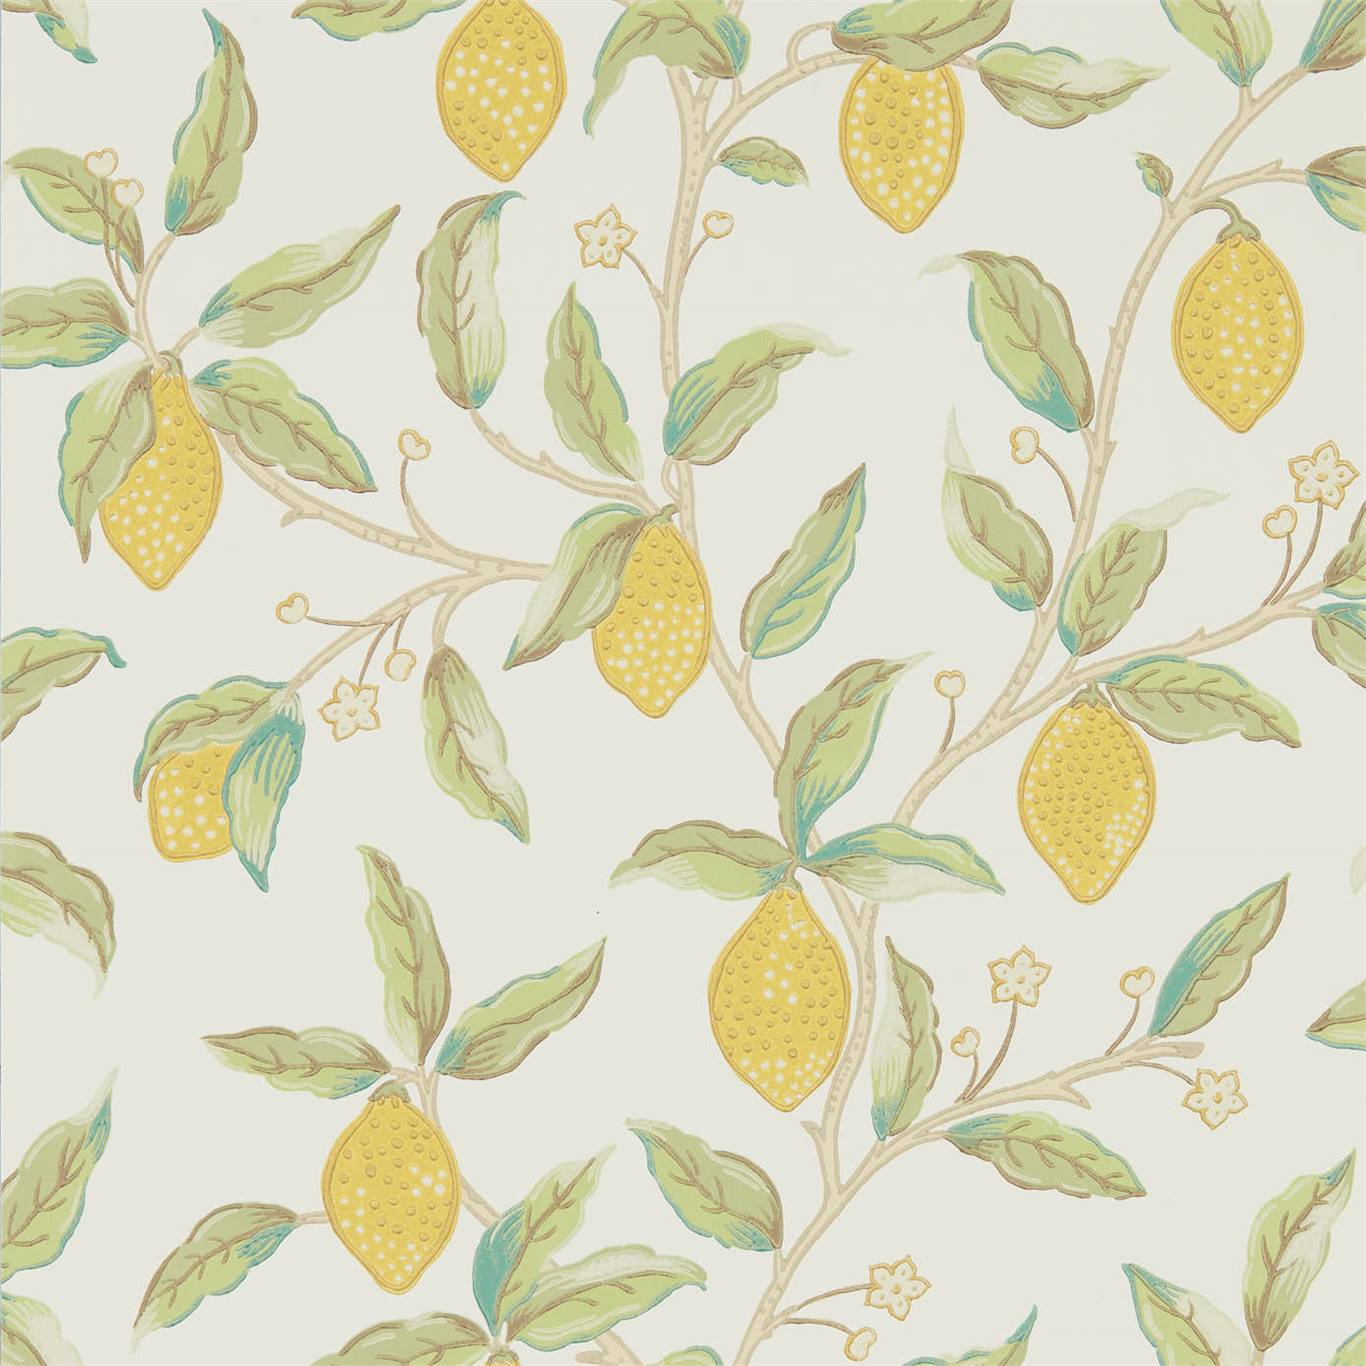 Tapet William Morris Lemon Tree 216672